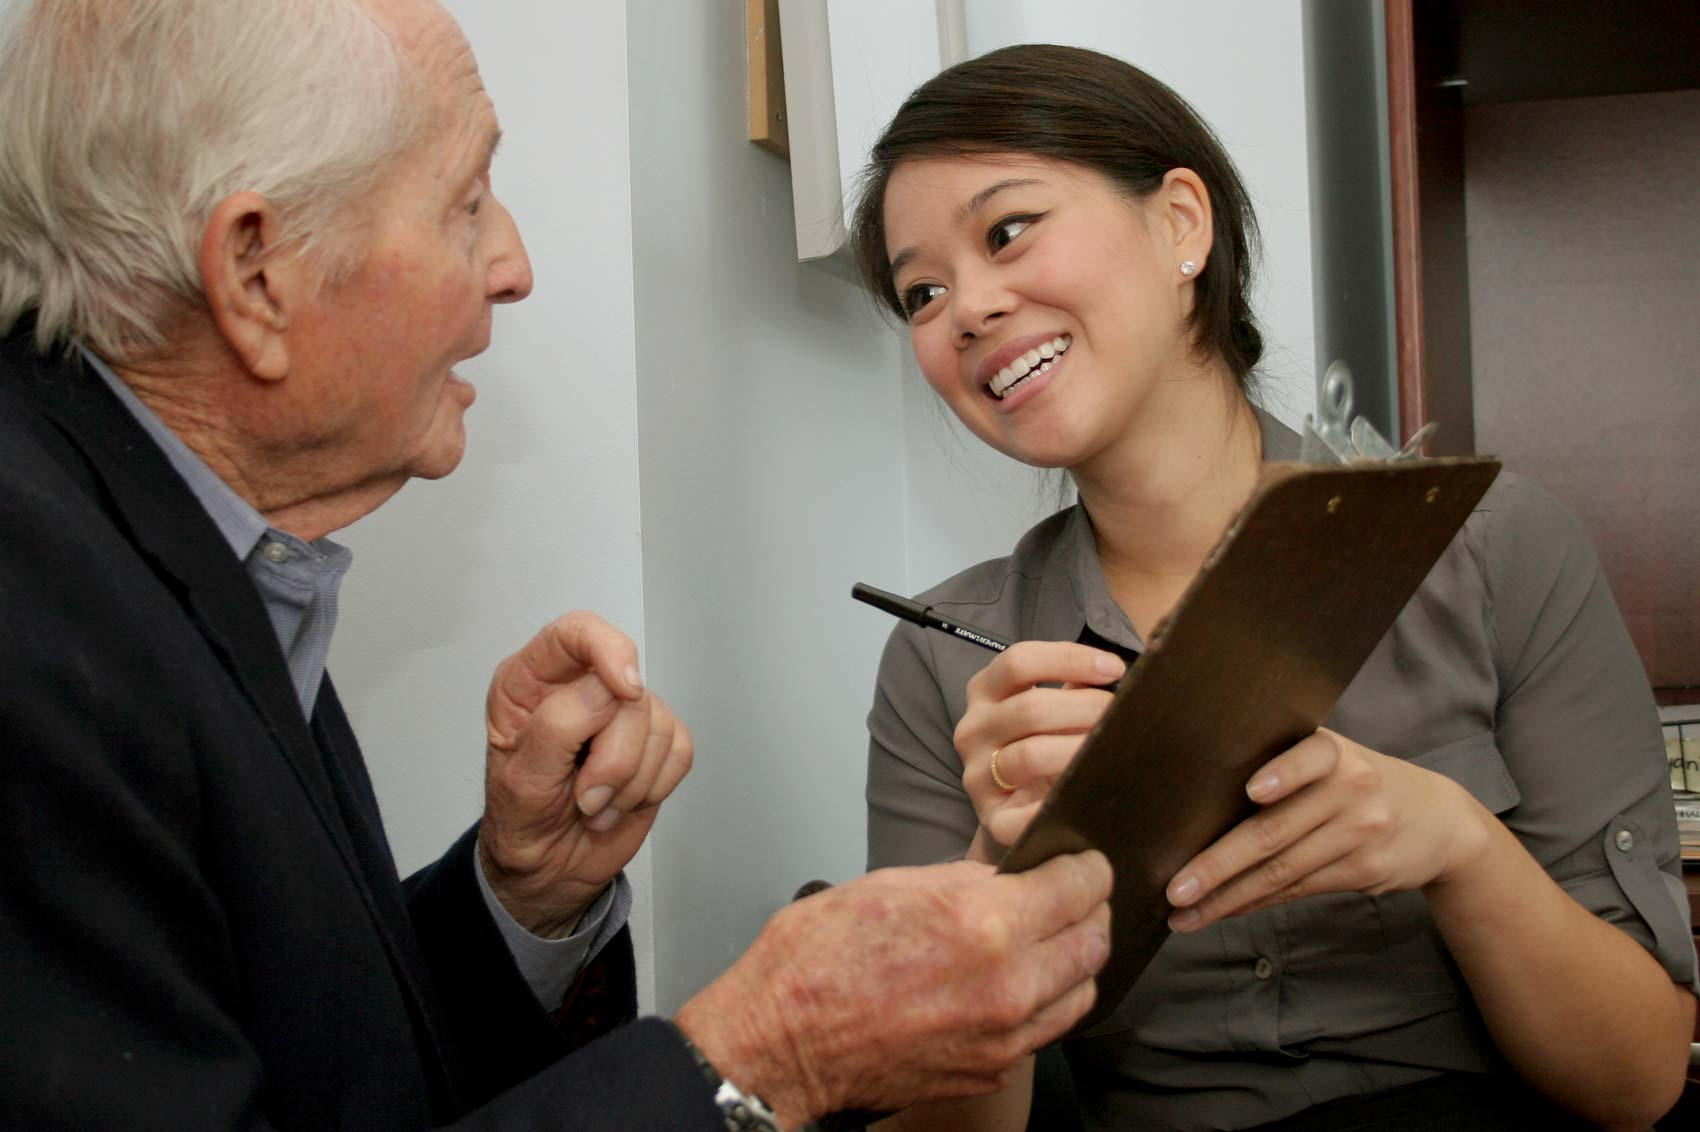 Woman in medical office filling out paperwork with patient